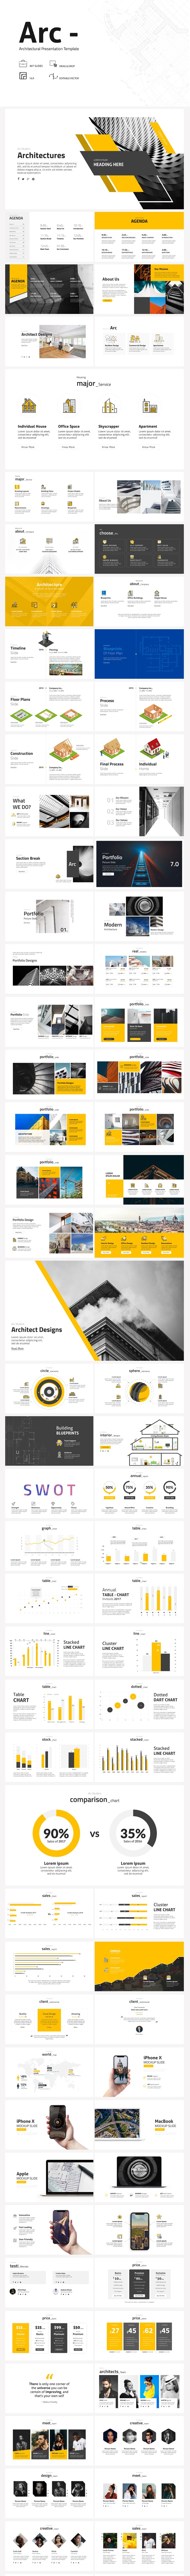 Arc - Architecture Google Slides - Google Slides Presentation Templates